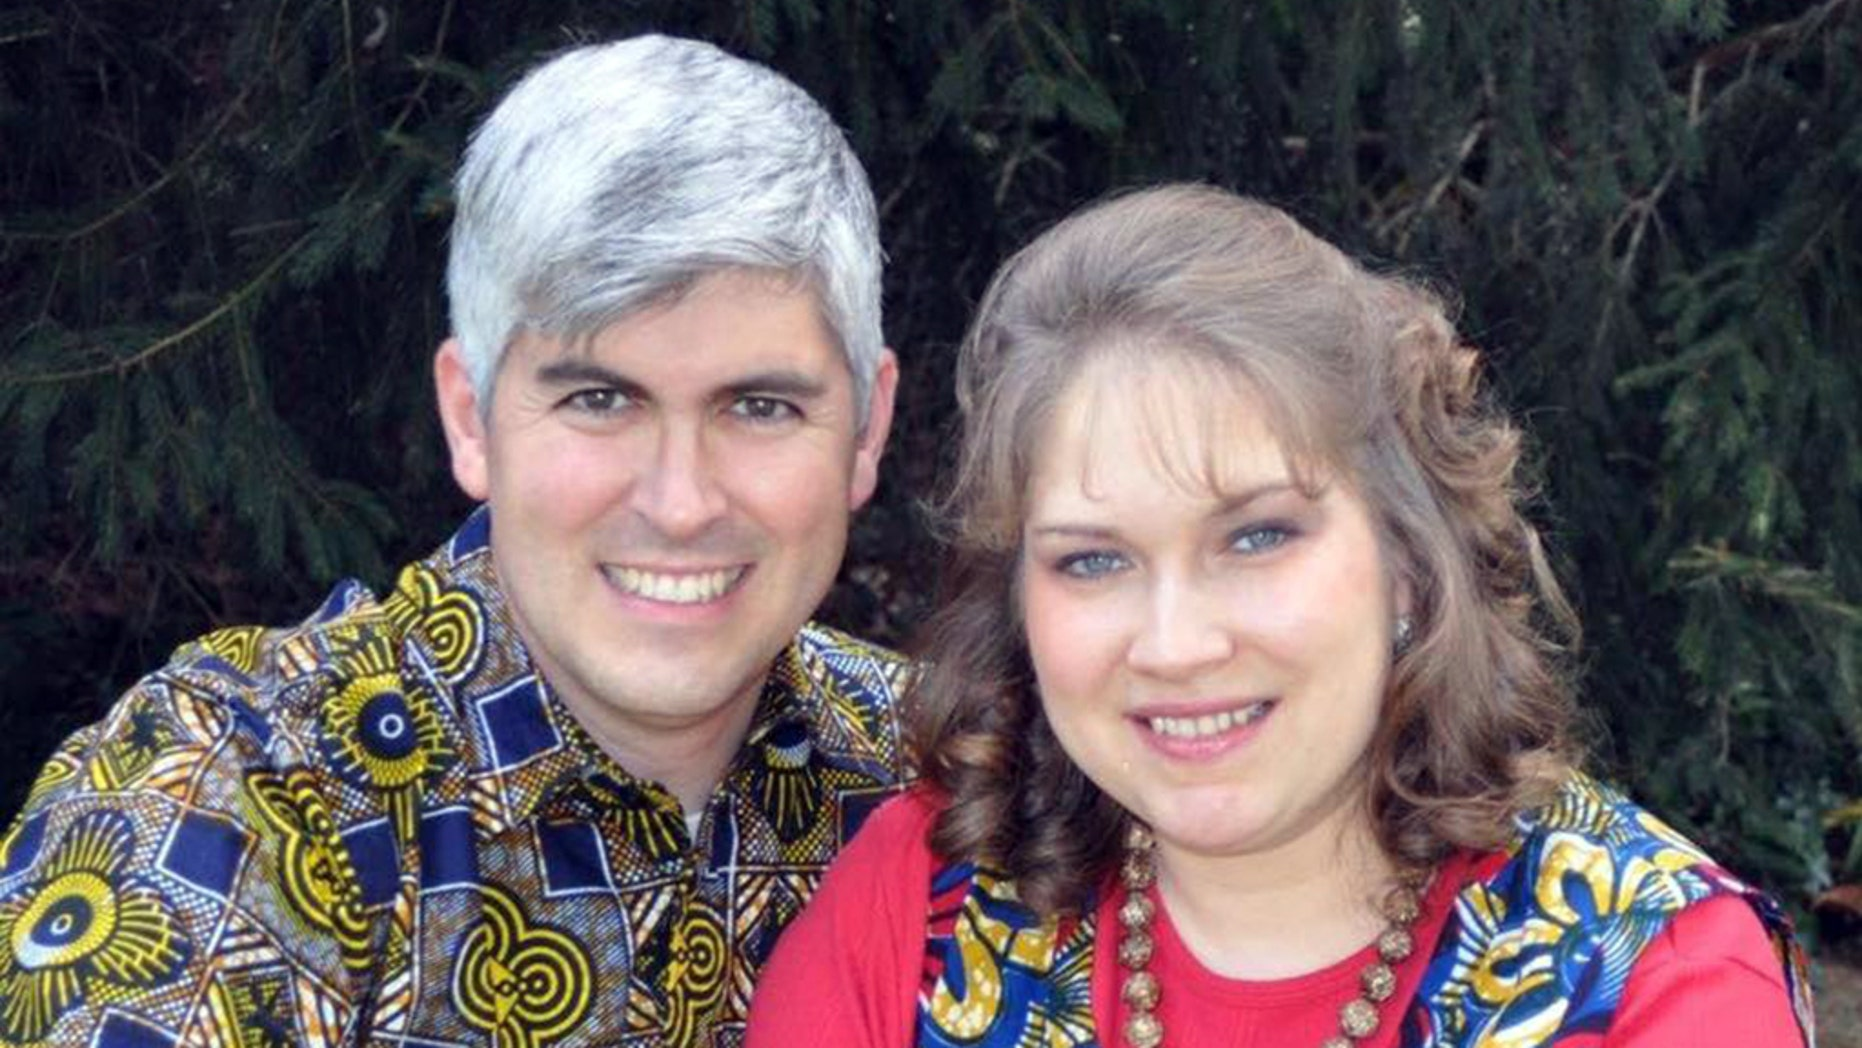 Missionary from Indiana dies in Cameroon after being shot in head